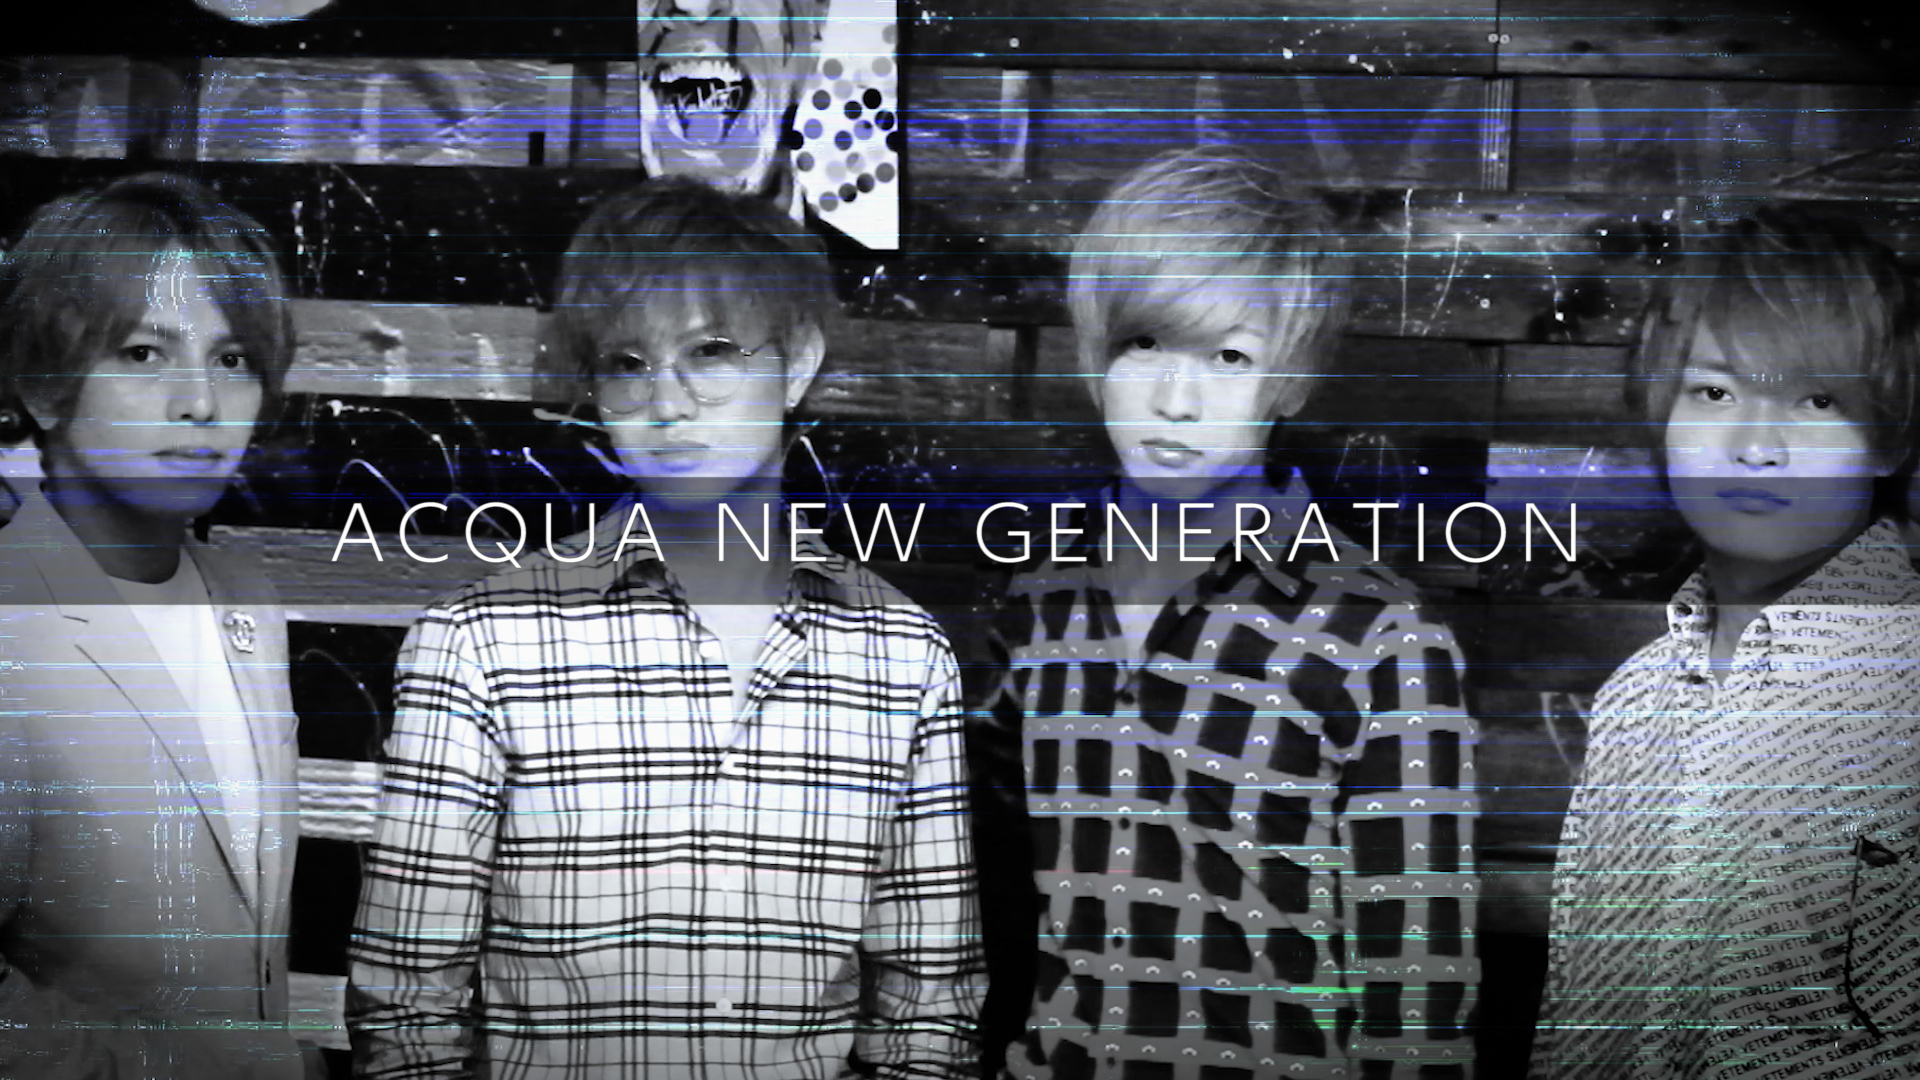 ACQUA NEW GENERATION